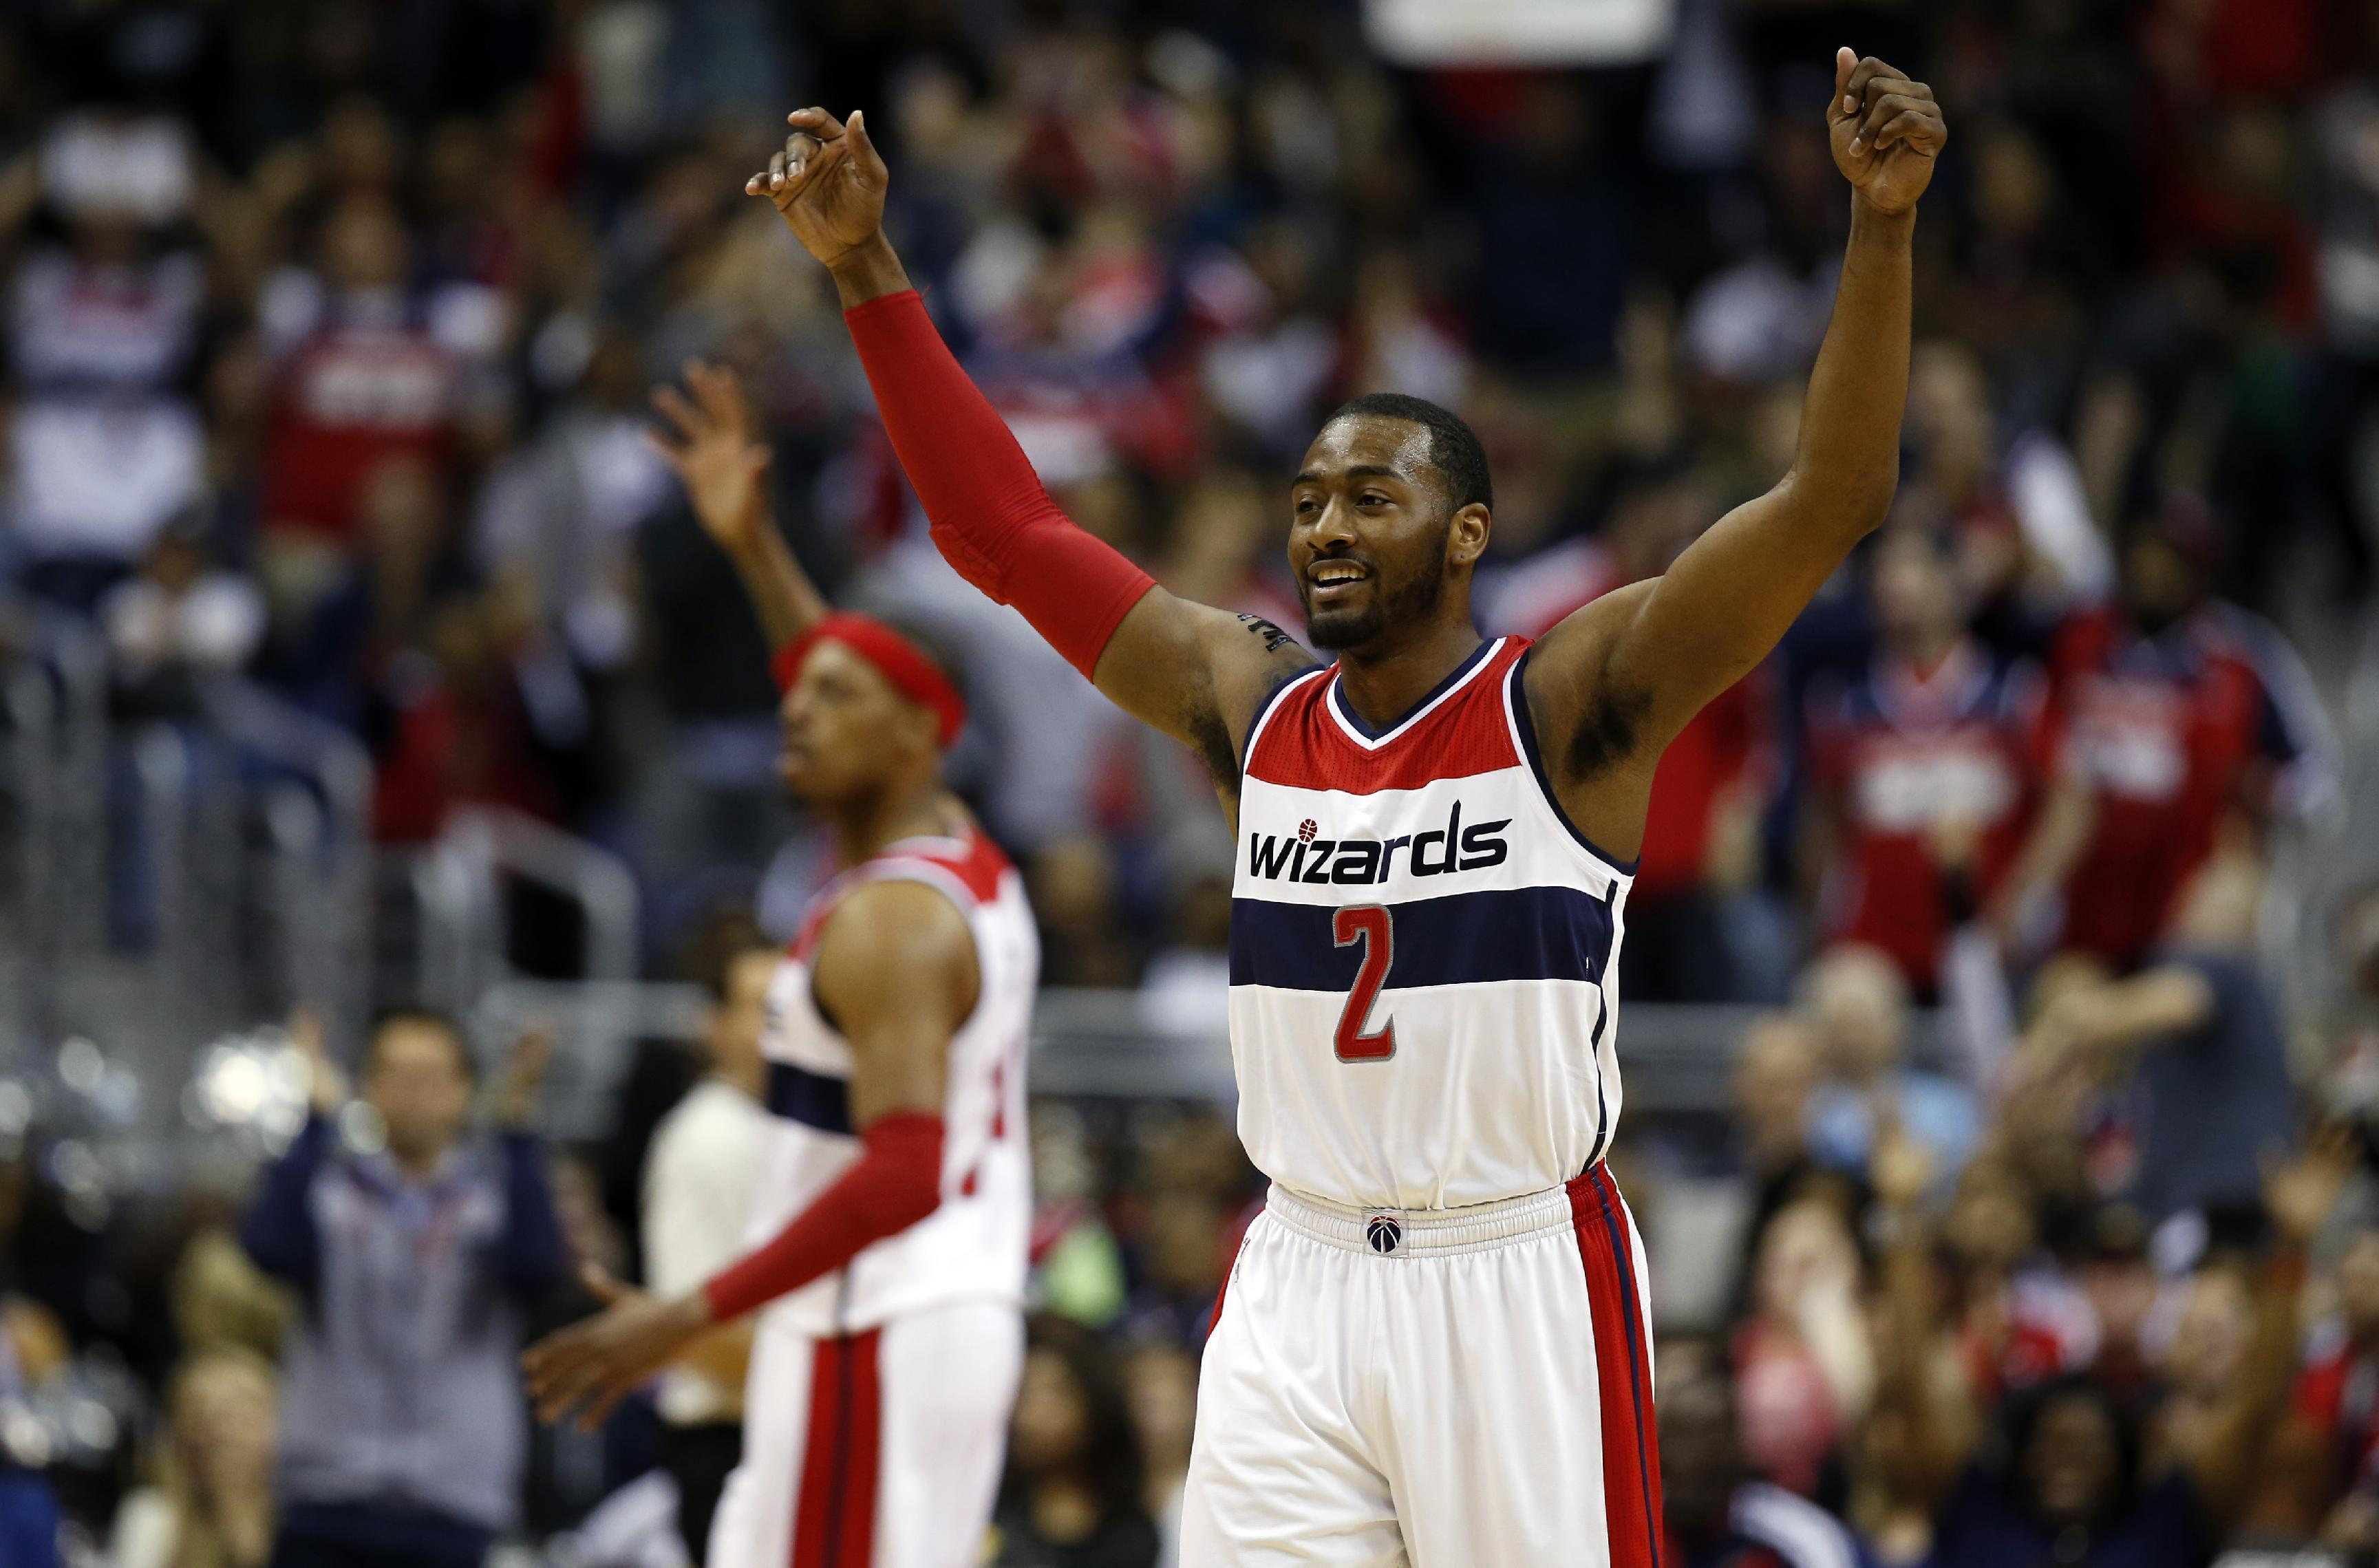 After Wizards get sweep, Pierce takes jabs at Raptors, Drake